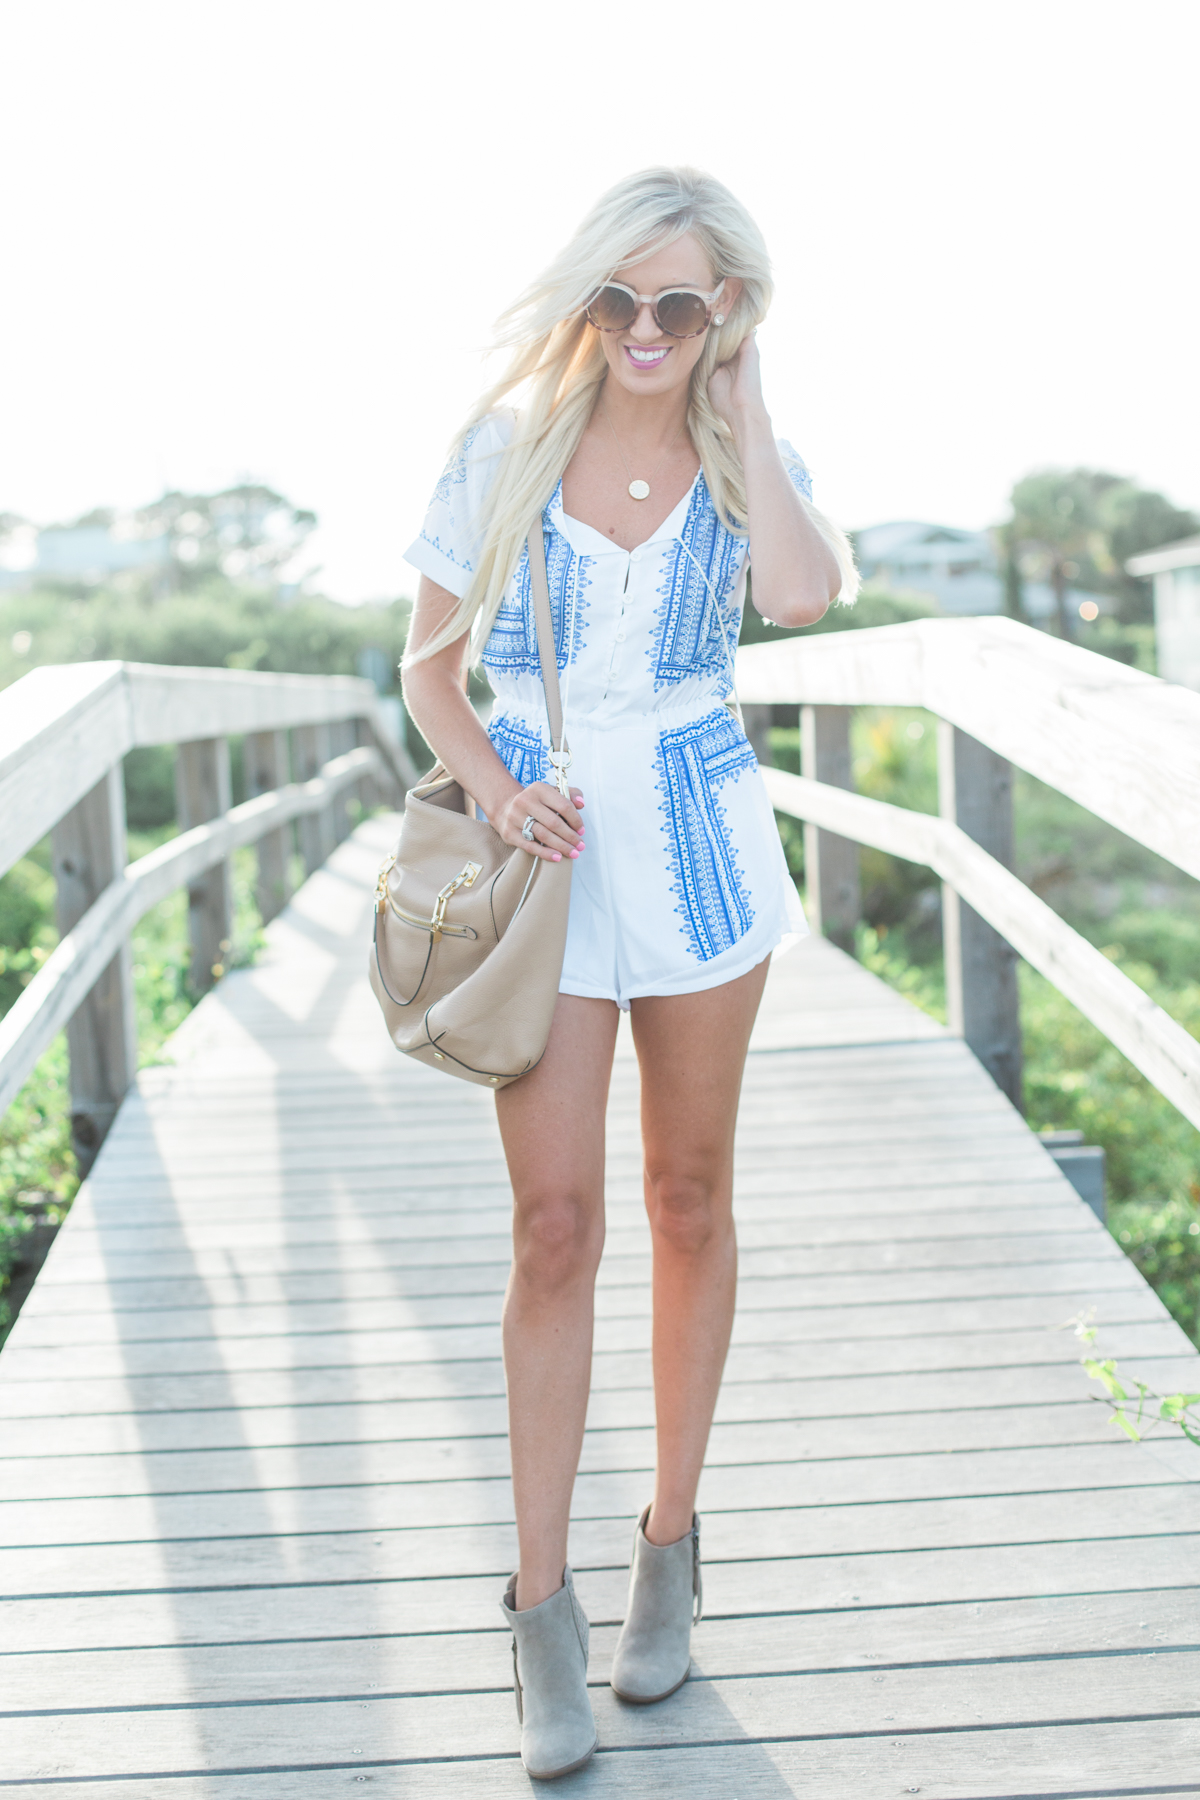 McKenna_Bleu_Fashion_Travel_Blog_Savannah_Georgia_photo-3